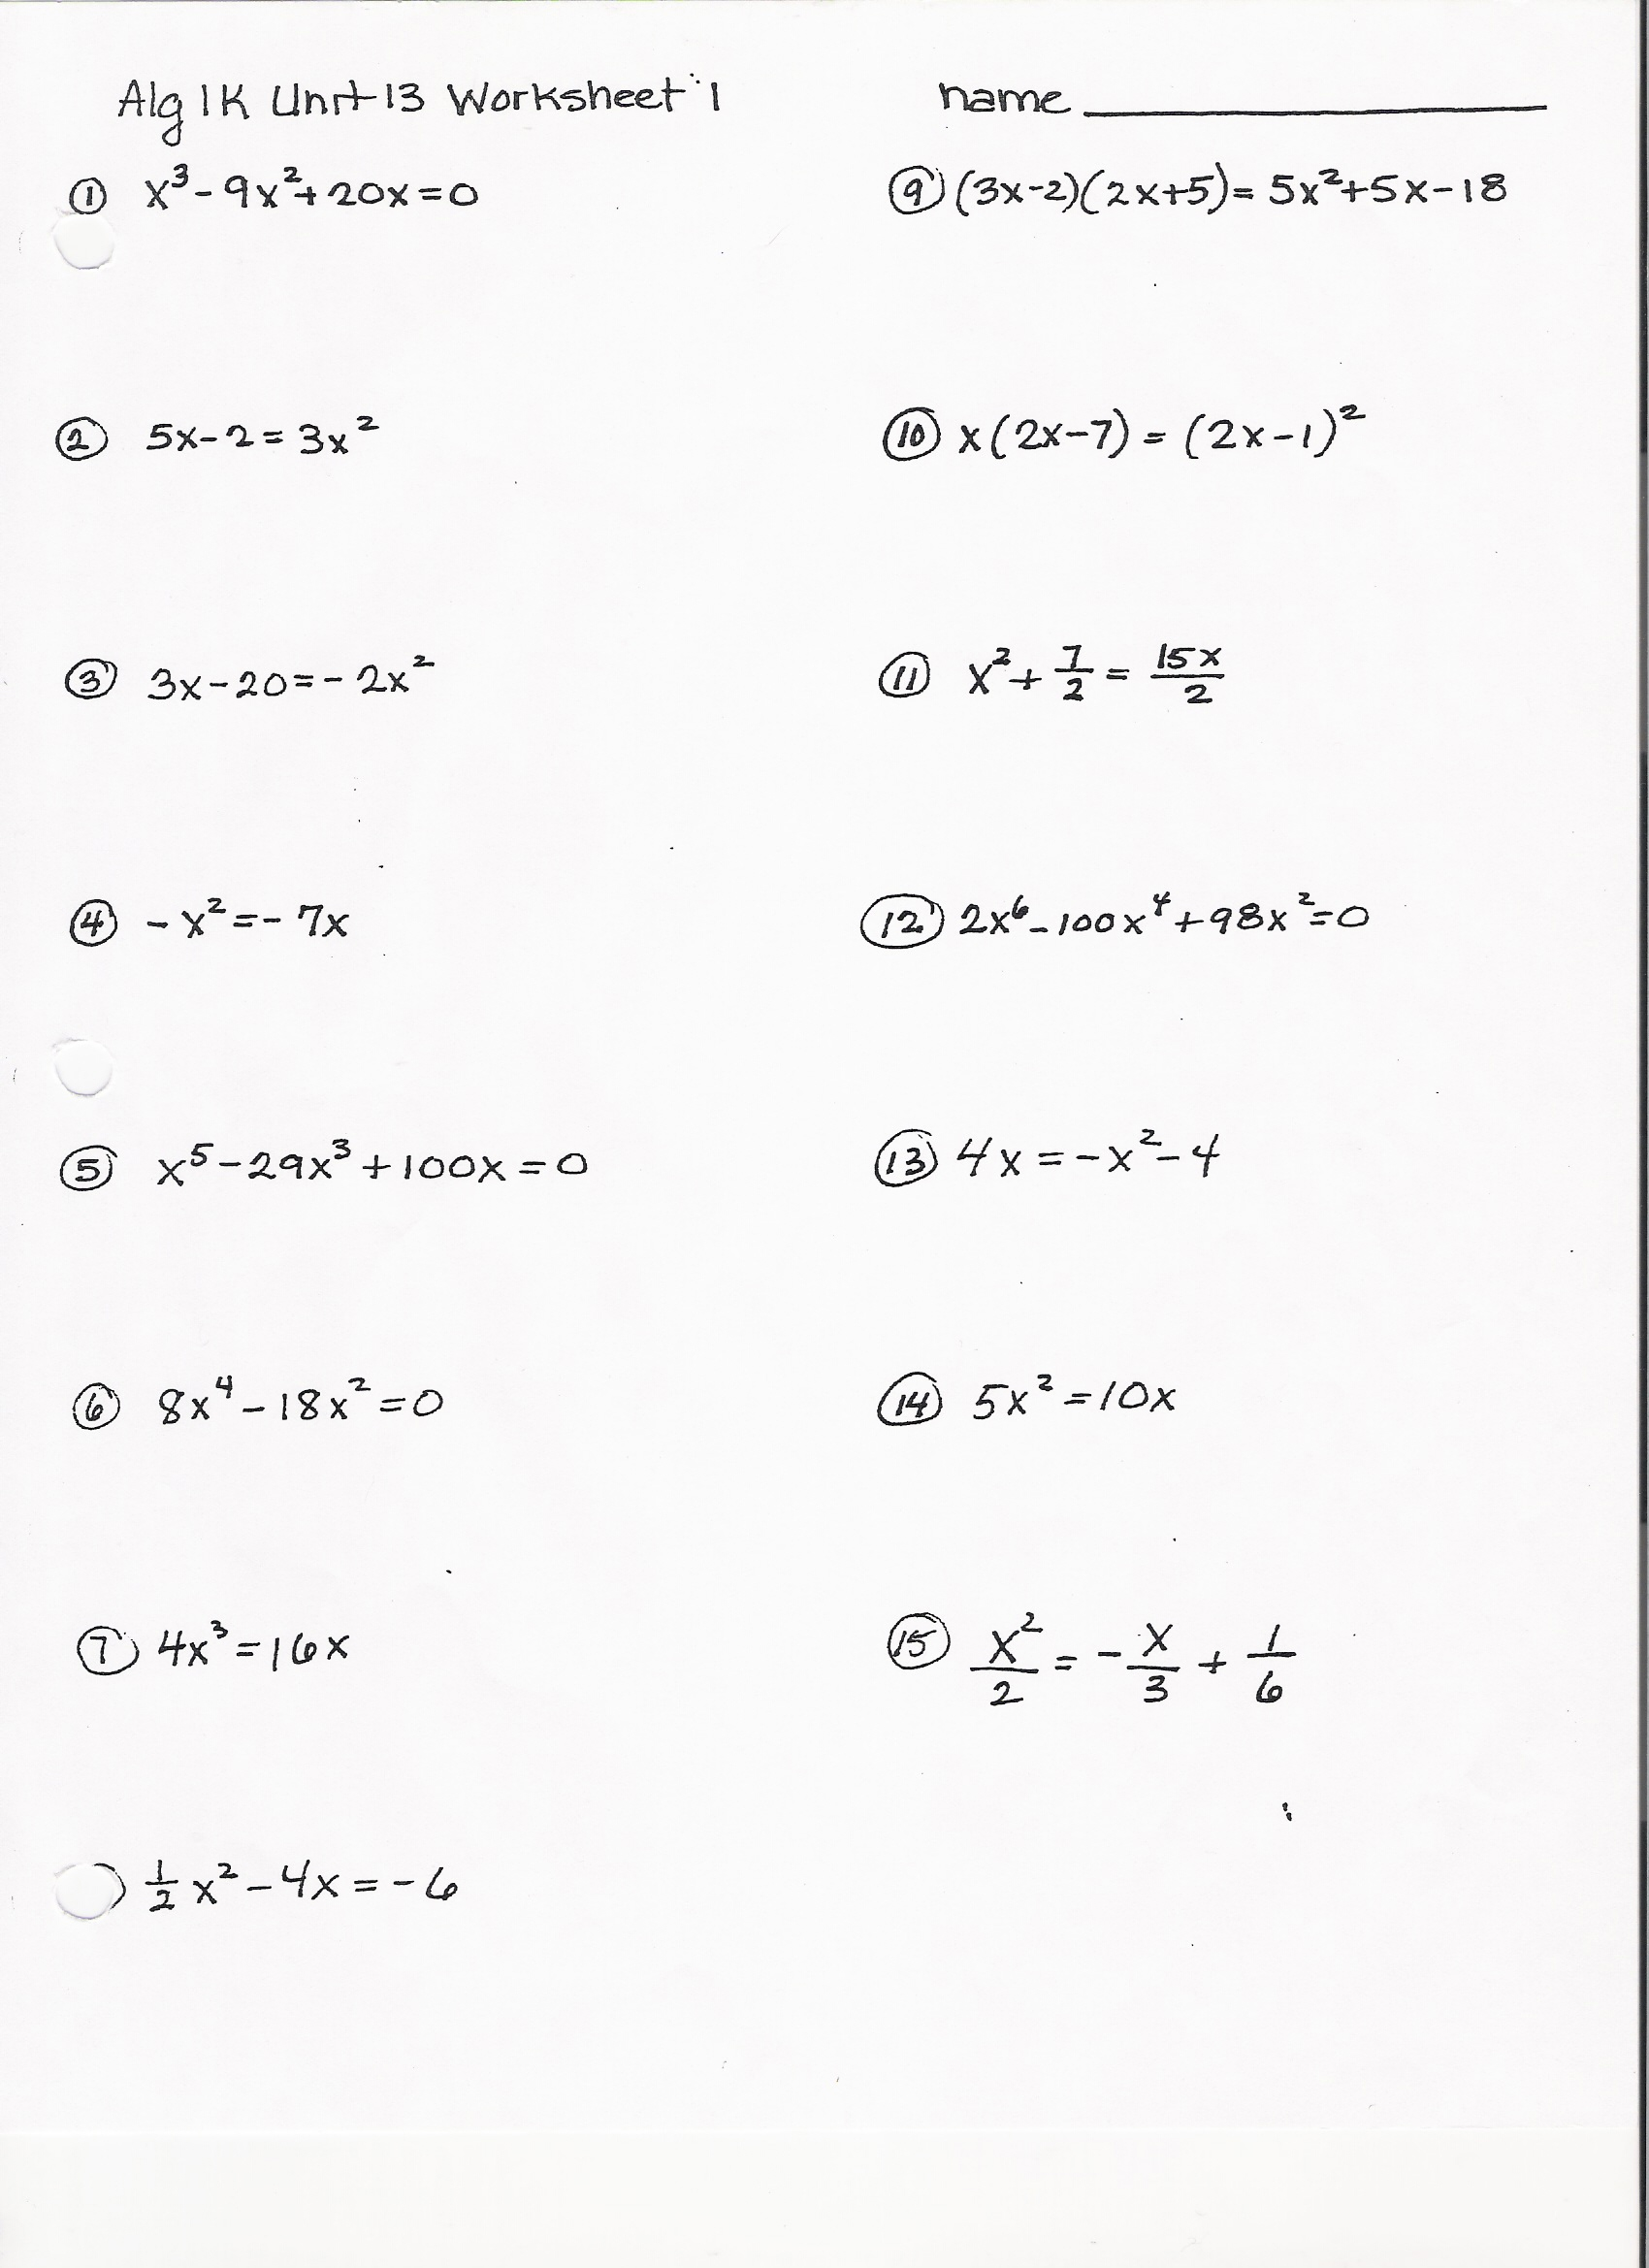 11 Best Images Of Algebra 1 Multiplying Polynomials